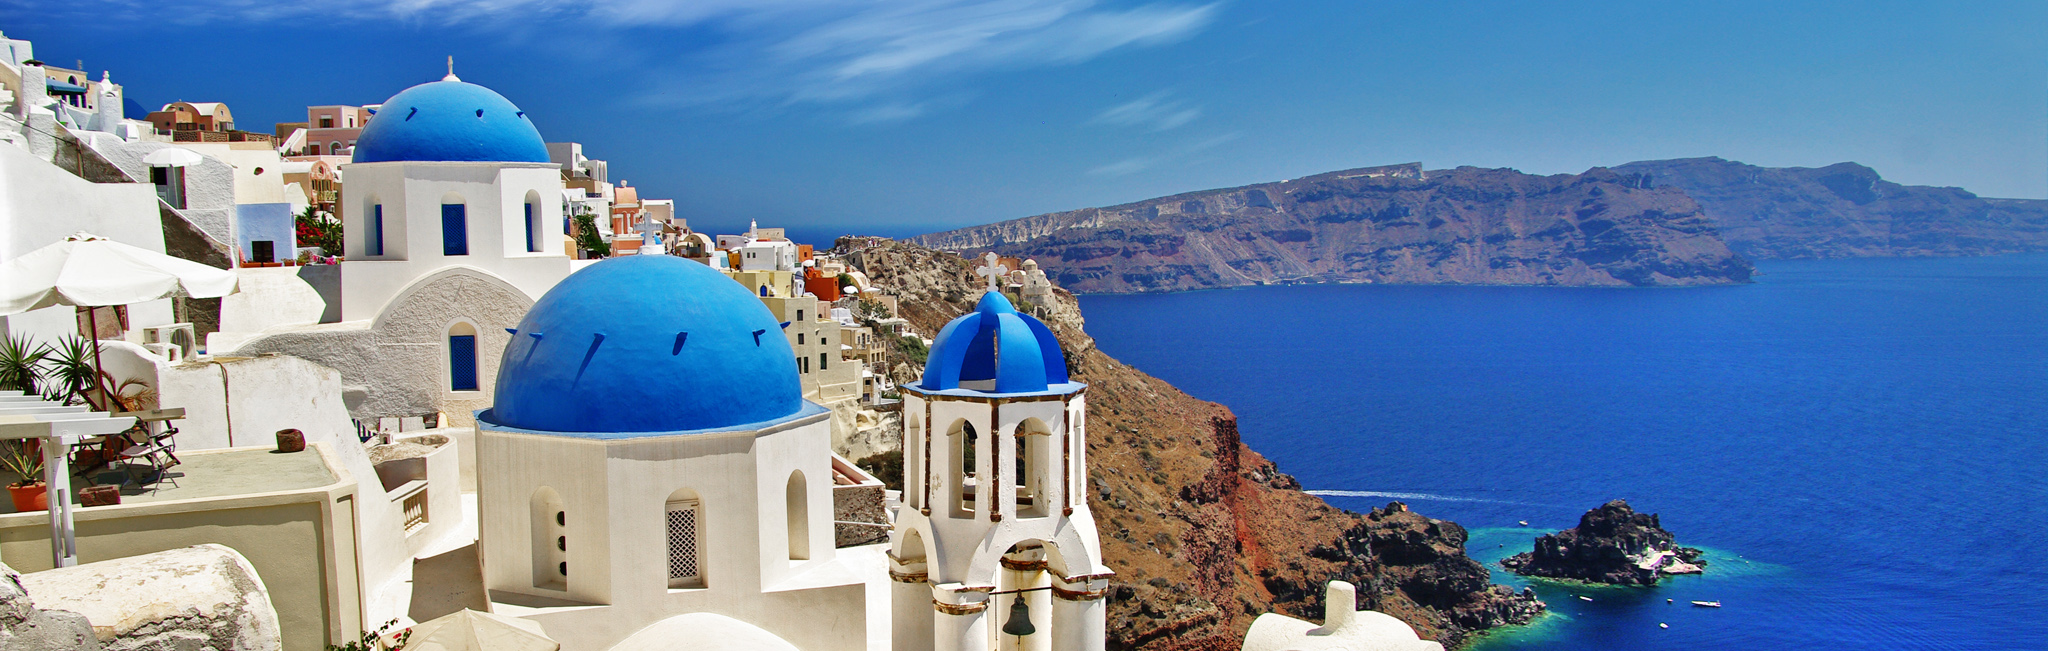 Greece Tour of Santorini